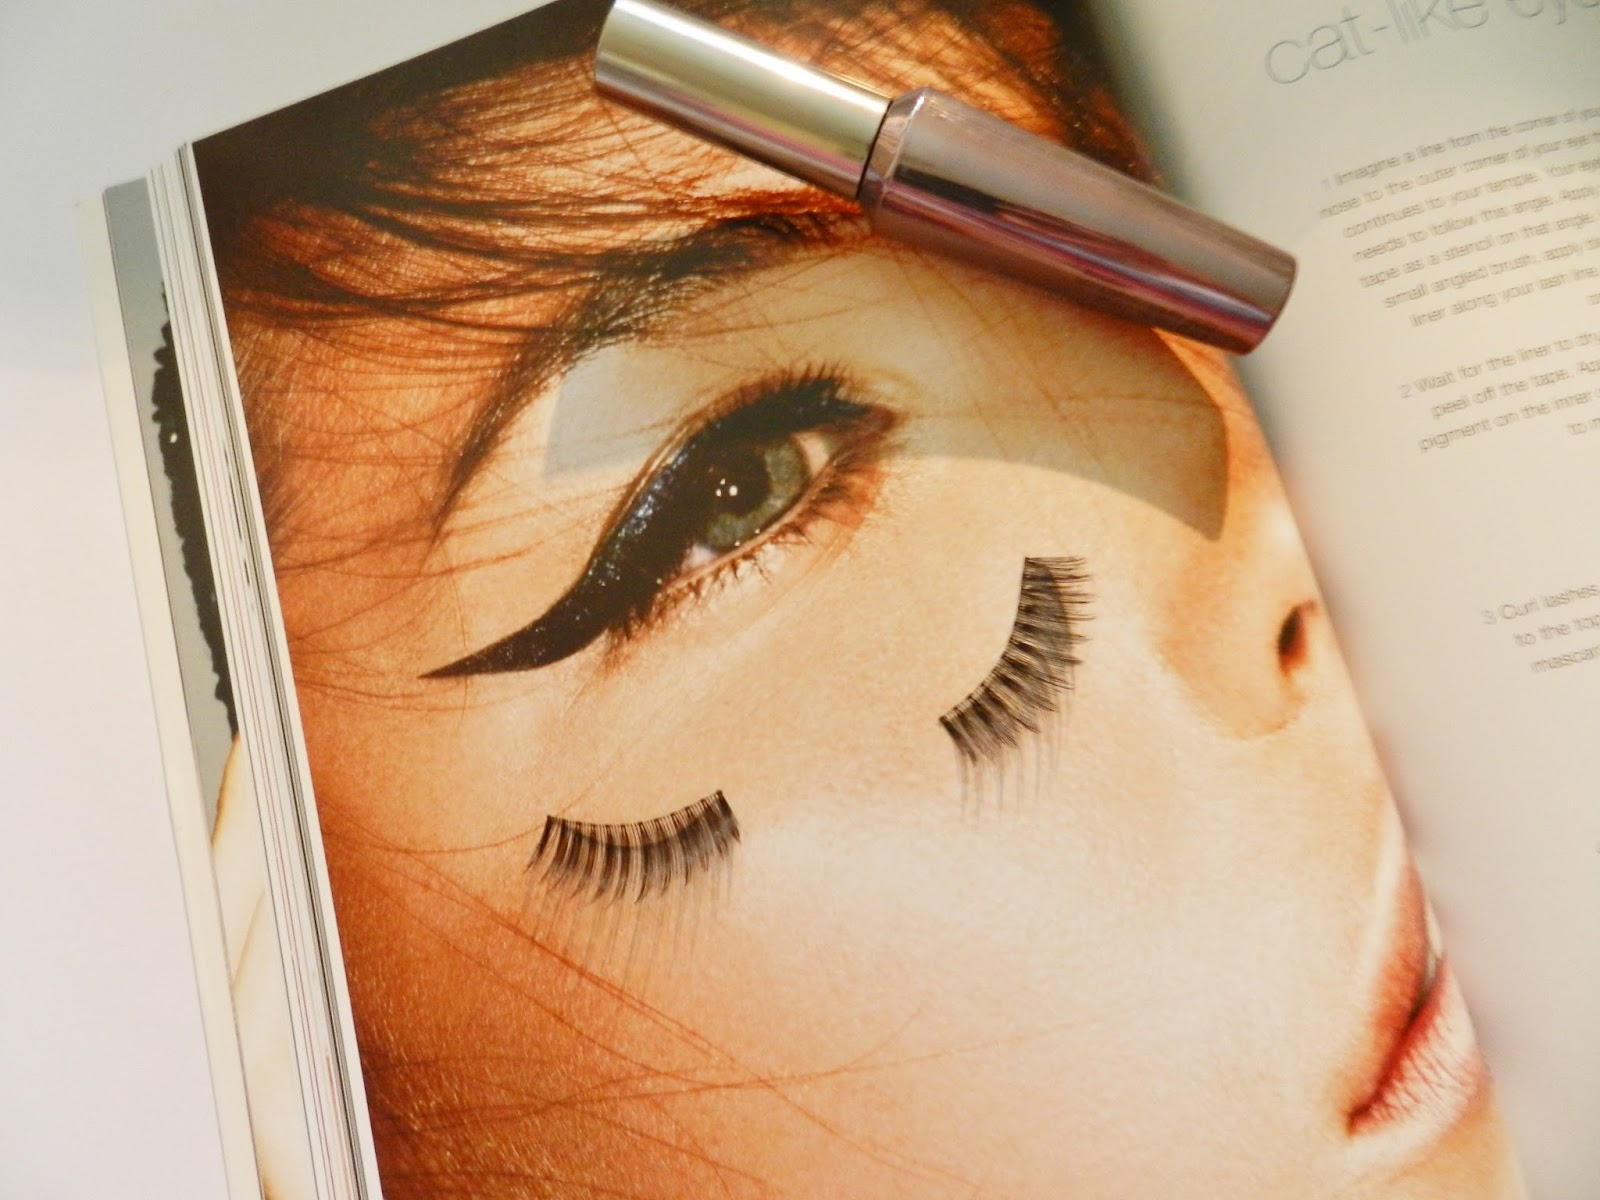 http://www.ellenrozalia.com/2015/04/eyelash-extensions-are-they-really.html